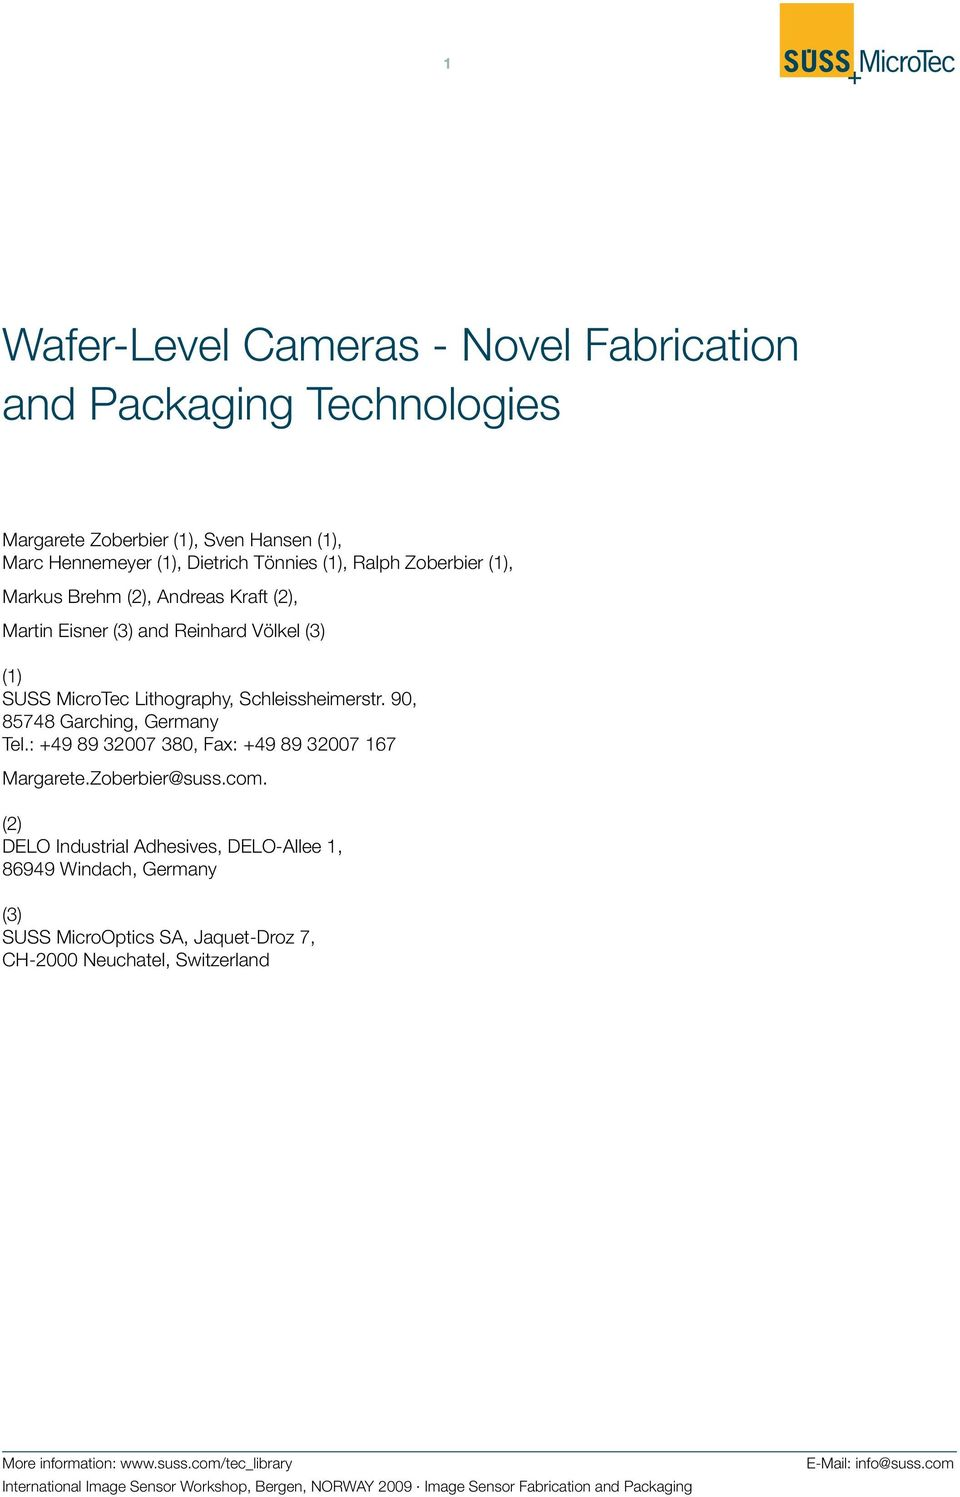 Wafer Level Cameras Novel Fabrication And Packaging Technologies Pdf Uv Glue For Dvd Digital Camera Laserlenscircuit Board Bonding Buy 49 89 32007 380 Fax 167 Margarete